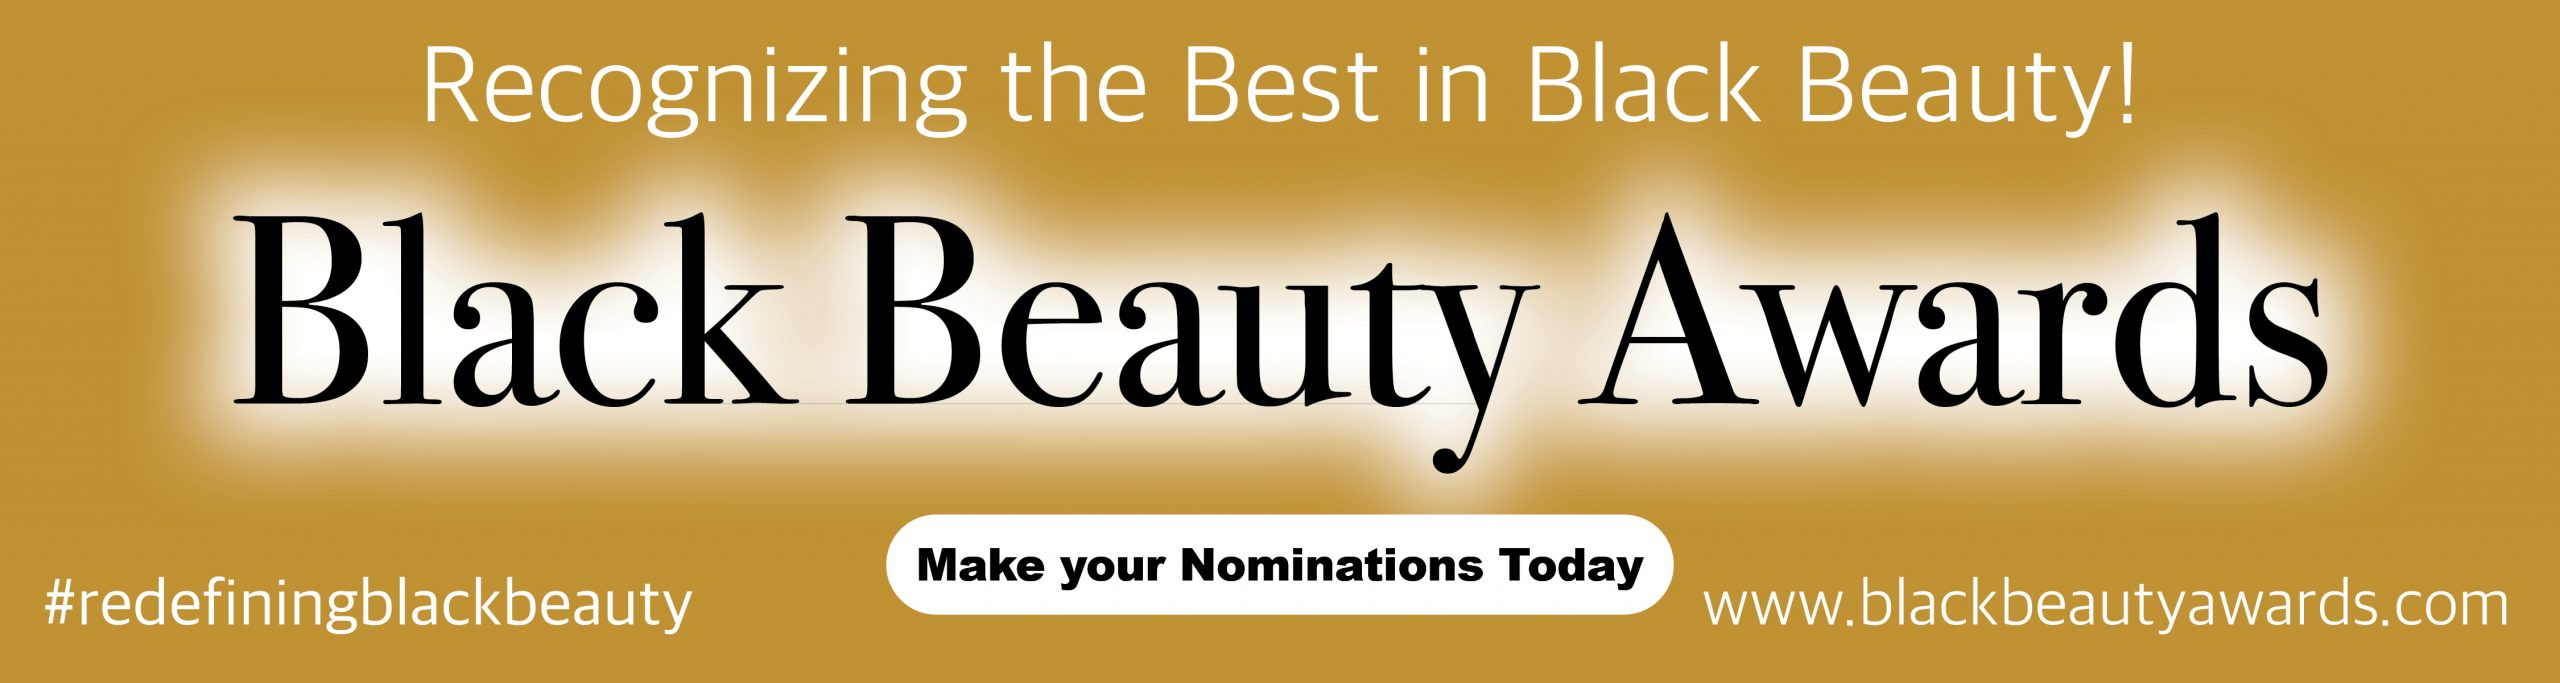 Black Beauty Awards